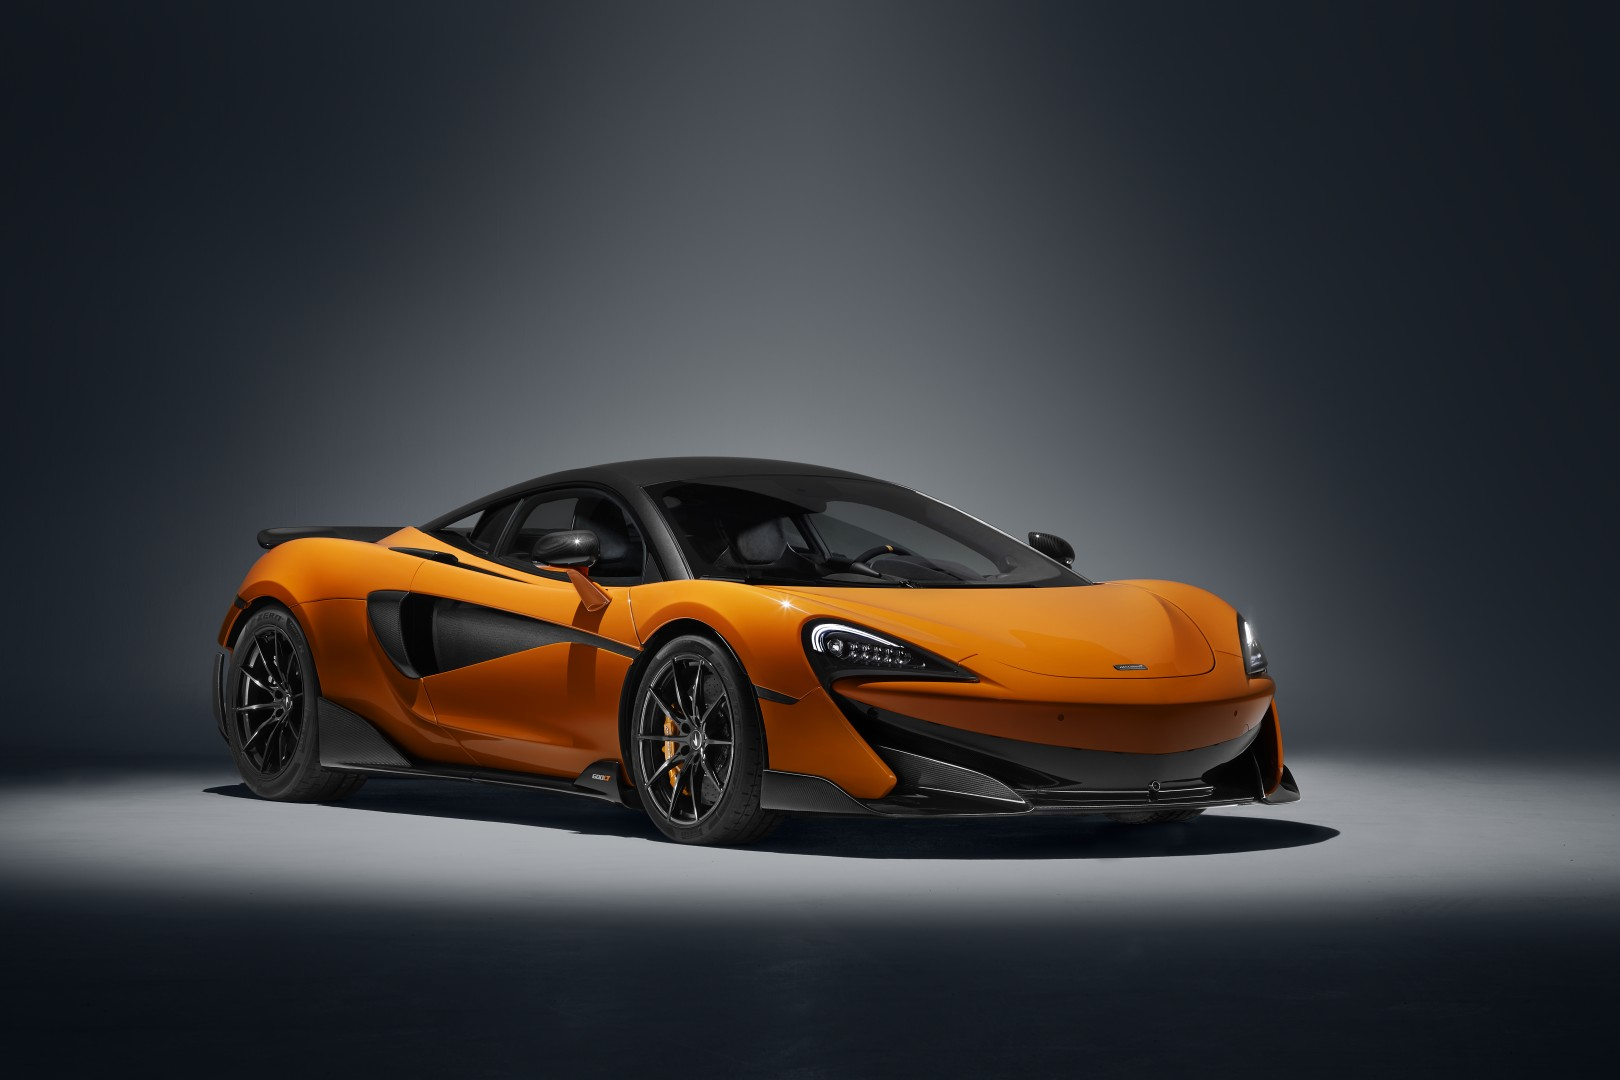 The McLaren 600LT The Ultimate Track Day Machine Front